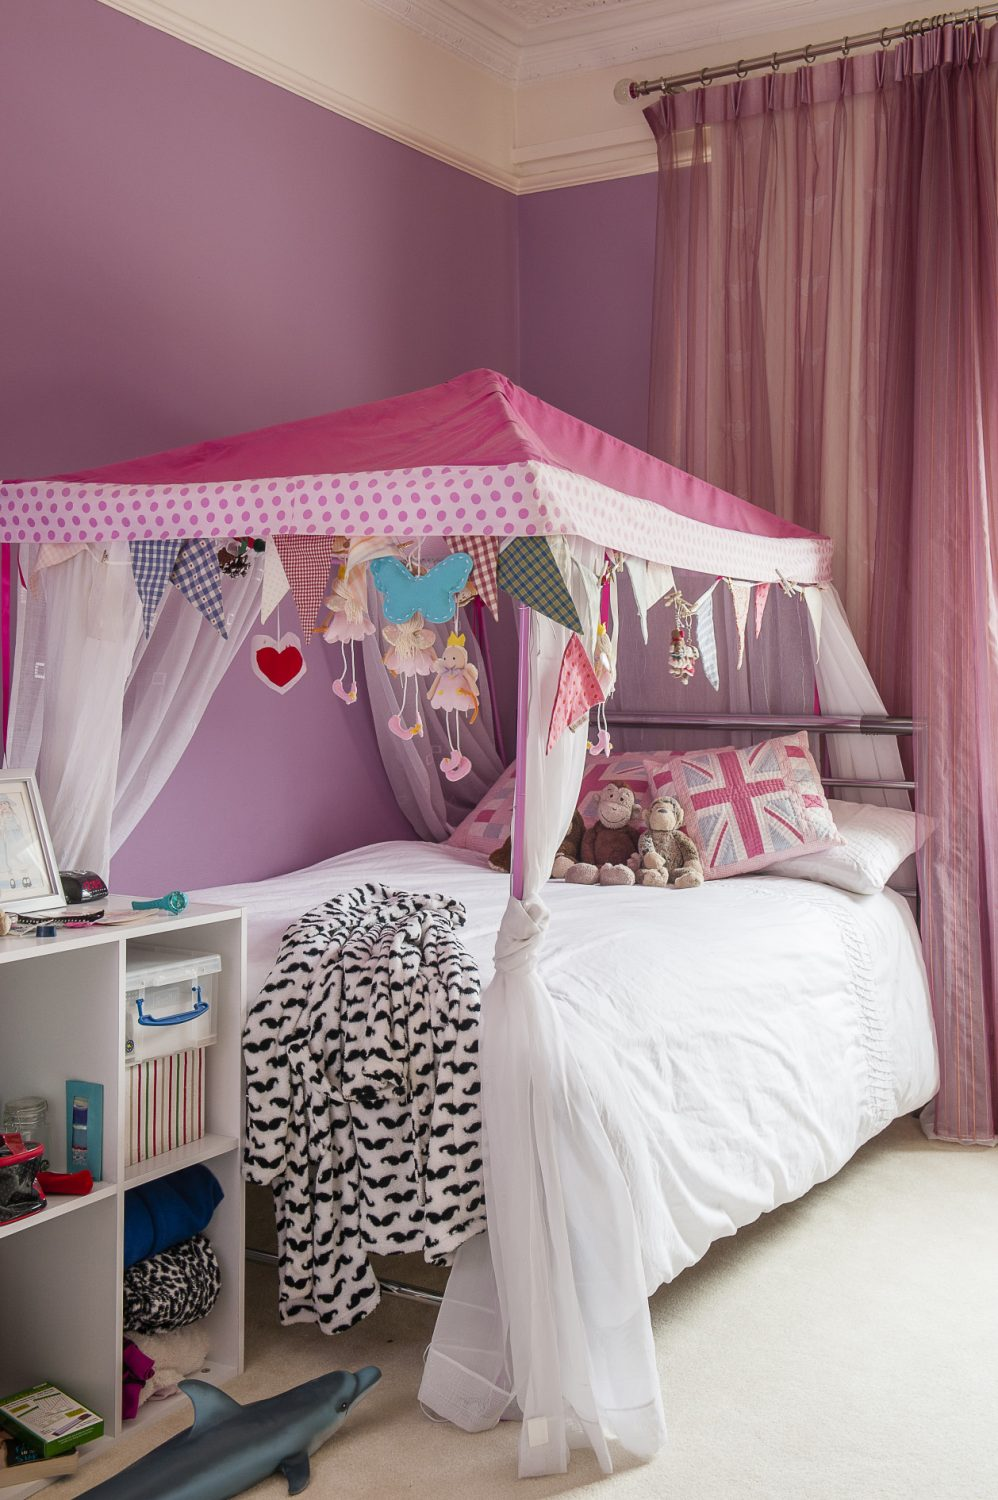 Daughter Katie's room is a paradise of pink and purple, complete with bunk beds to make it an ideal room for girly sleepovers